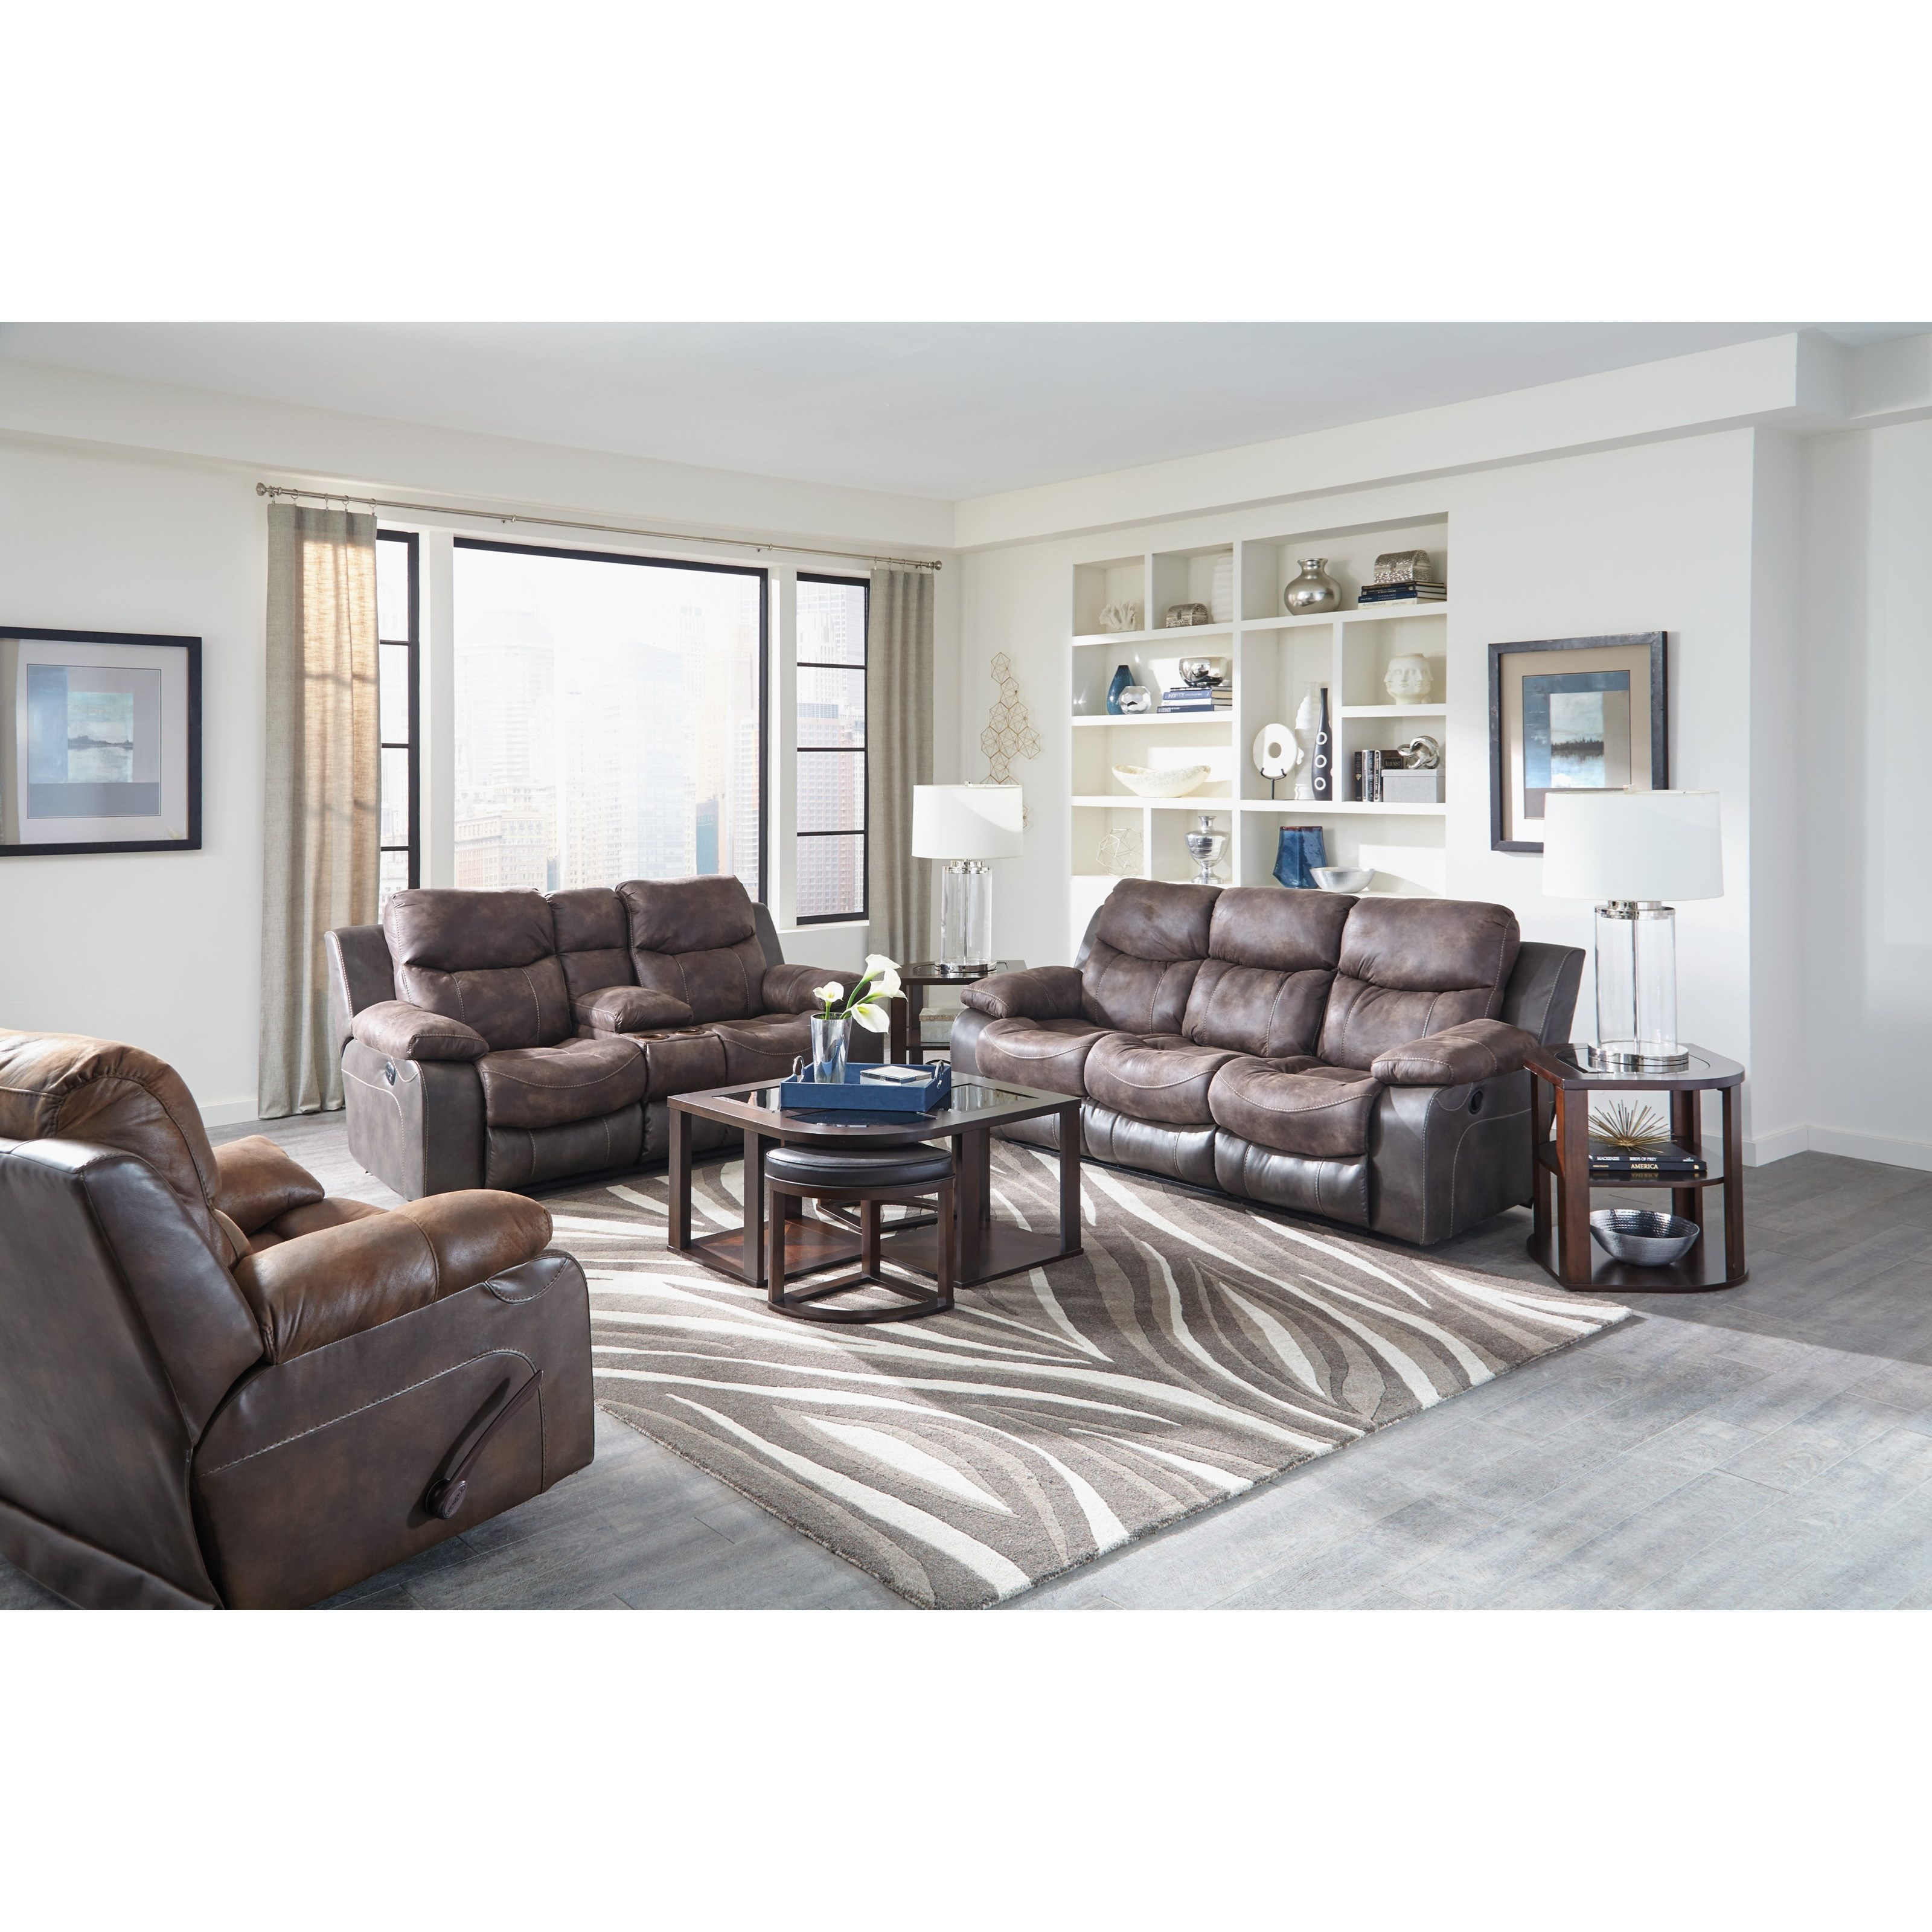 Reclining sofa with drop down table by catnapper wolf and reclining sofa with drop down table geotapseo Choice Image